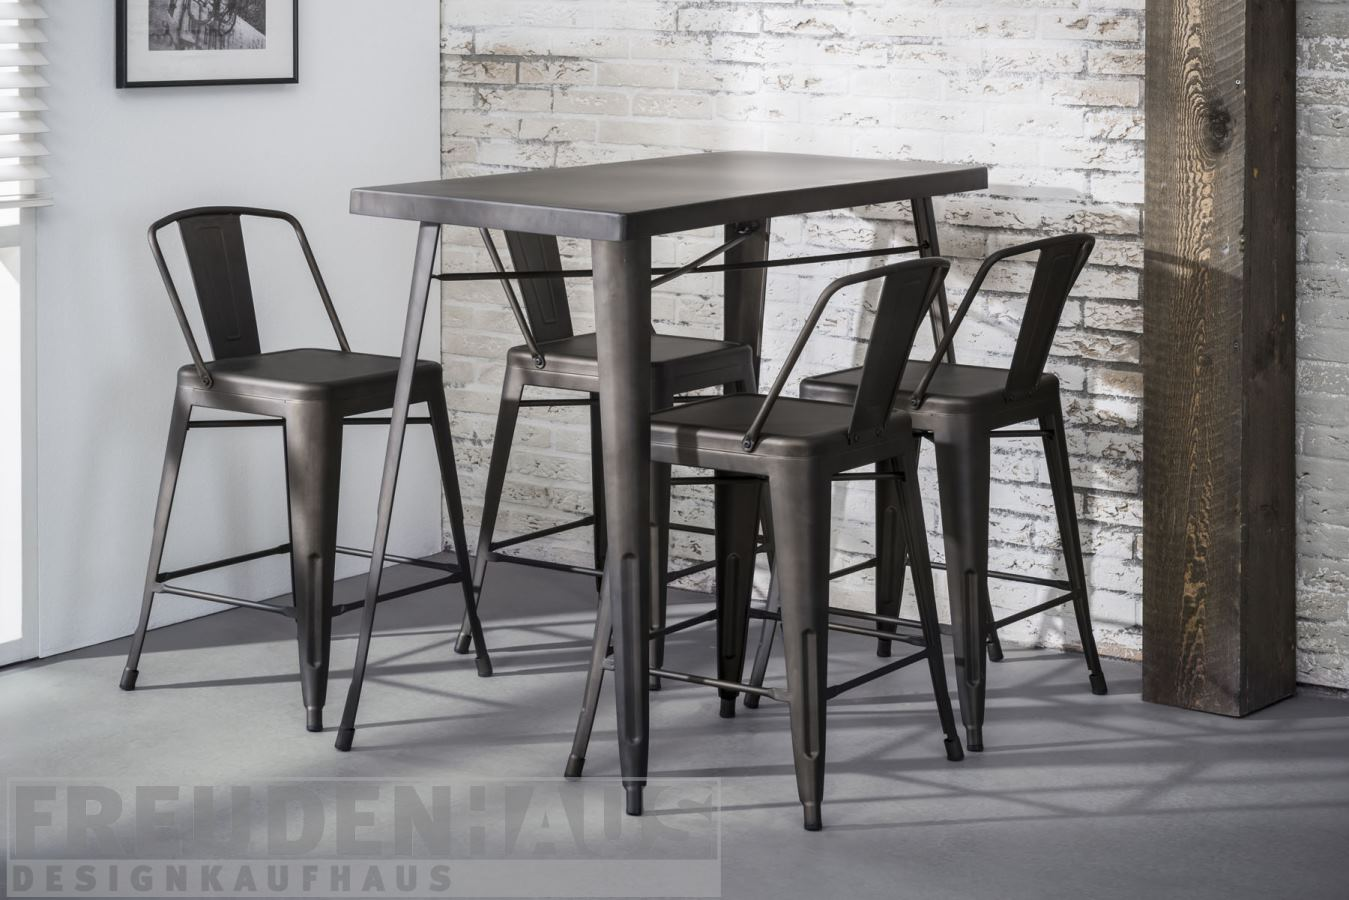 stehtisch bartisch set bistro metall industrial 120 x 60 4 barhocker m bel essen. Black Bedroom Furniture Sets. Home Design Ideas